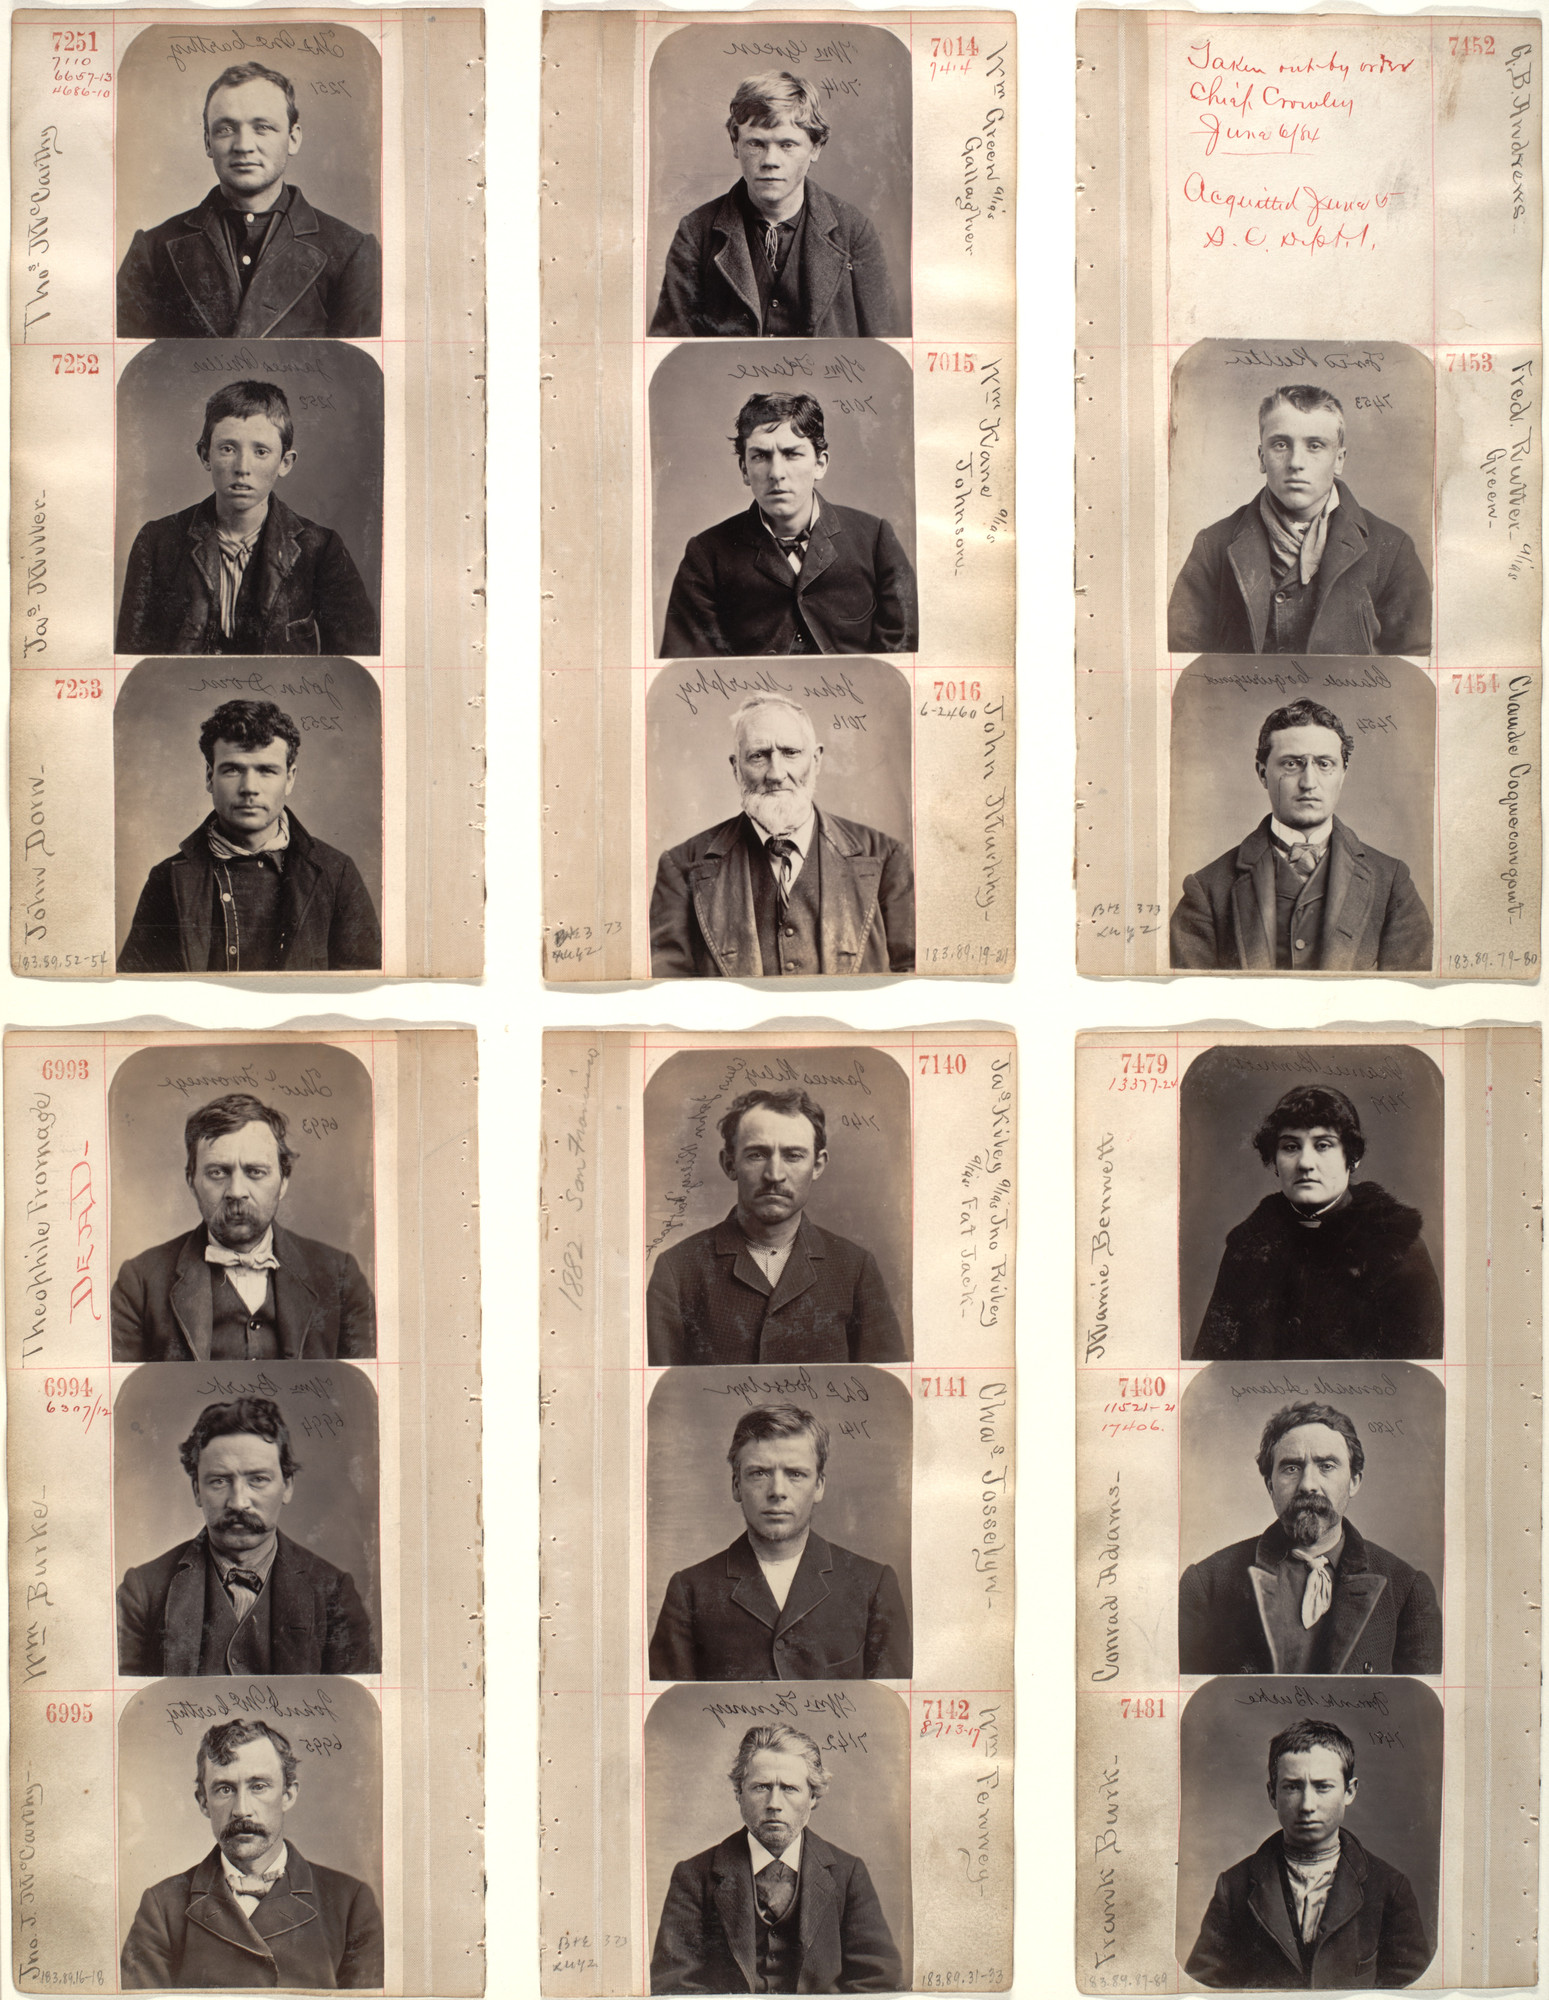 Unknown photographer. Untitled (Pages from an album of mugshots). 1870s-80s